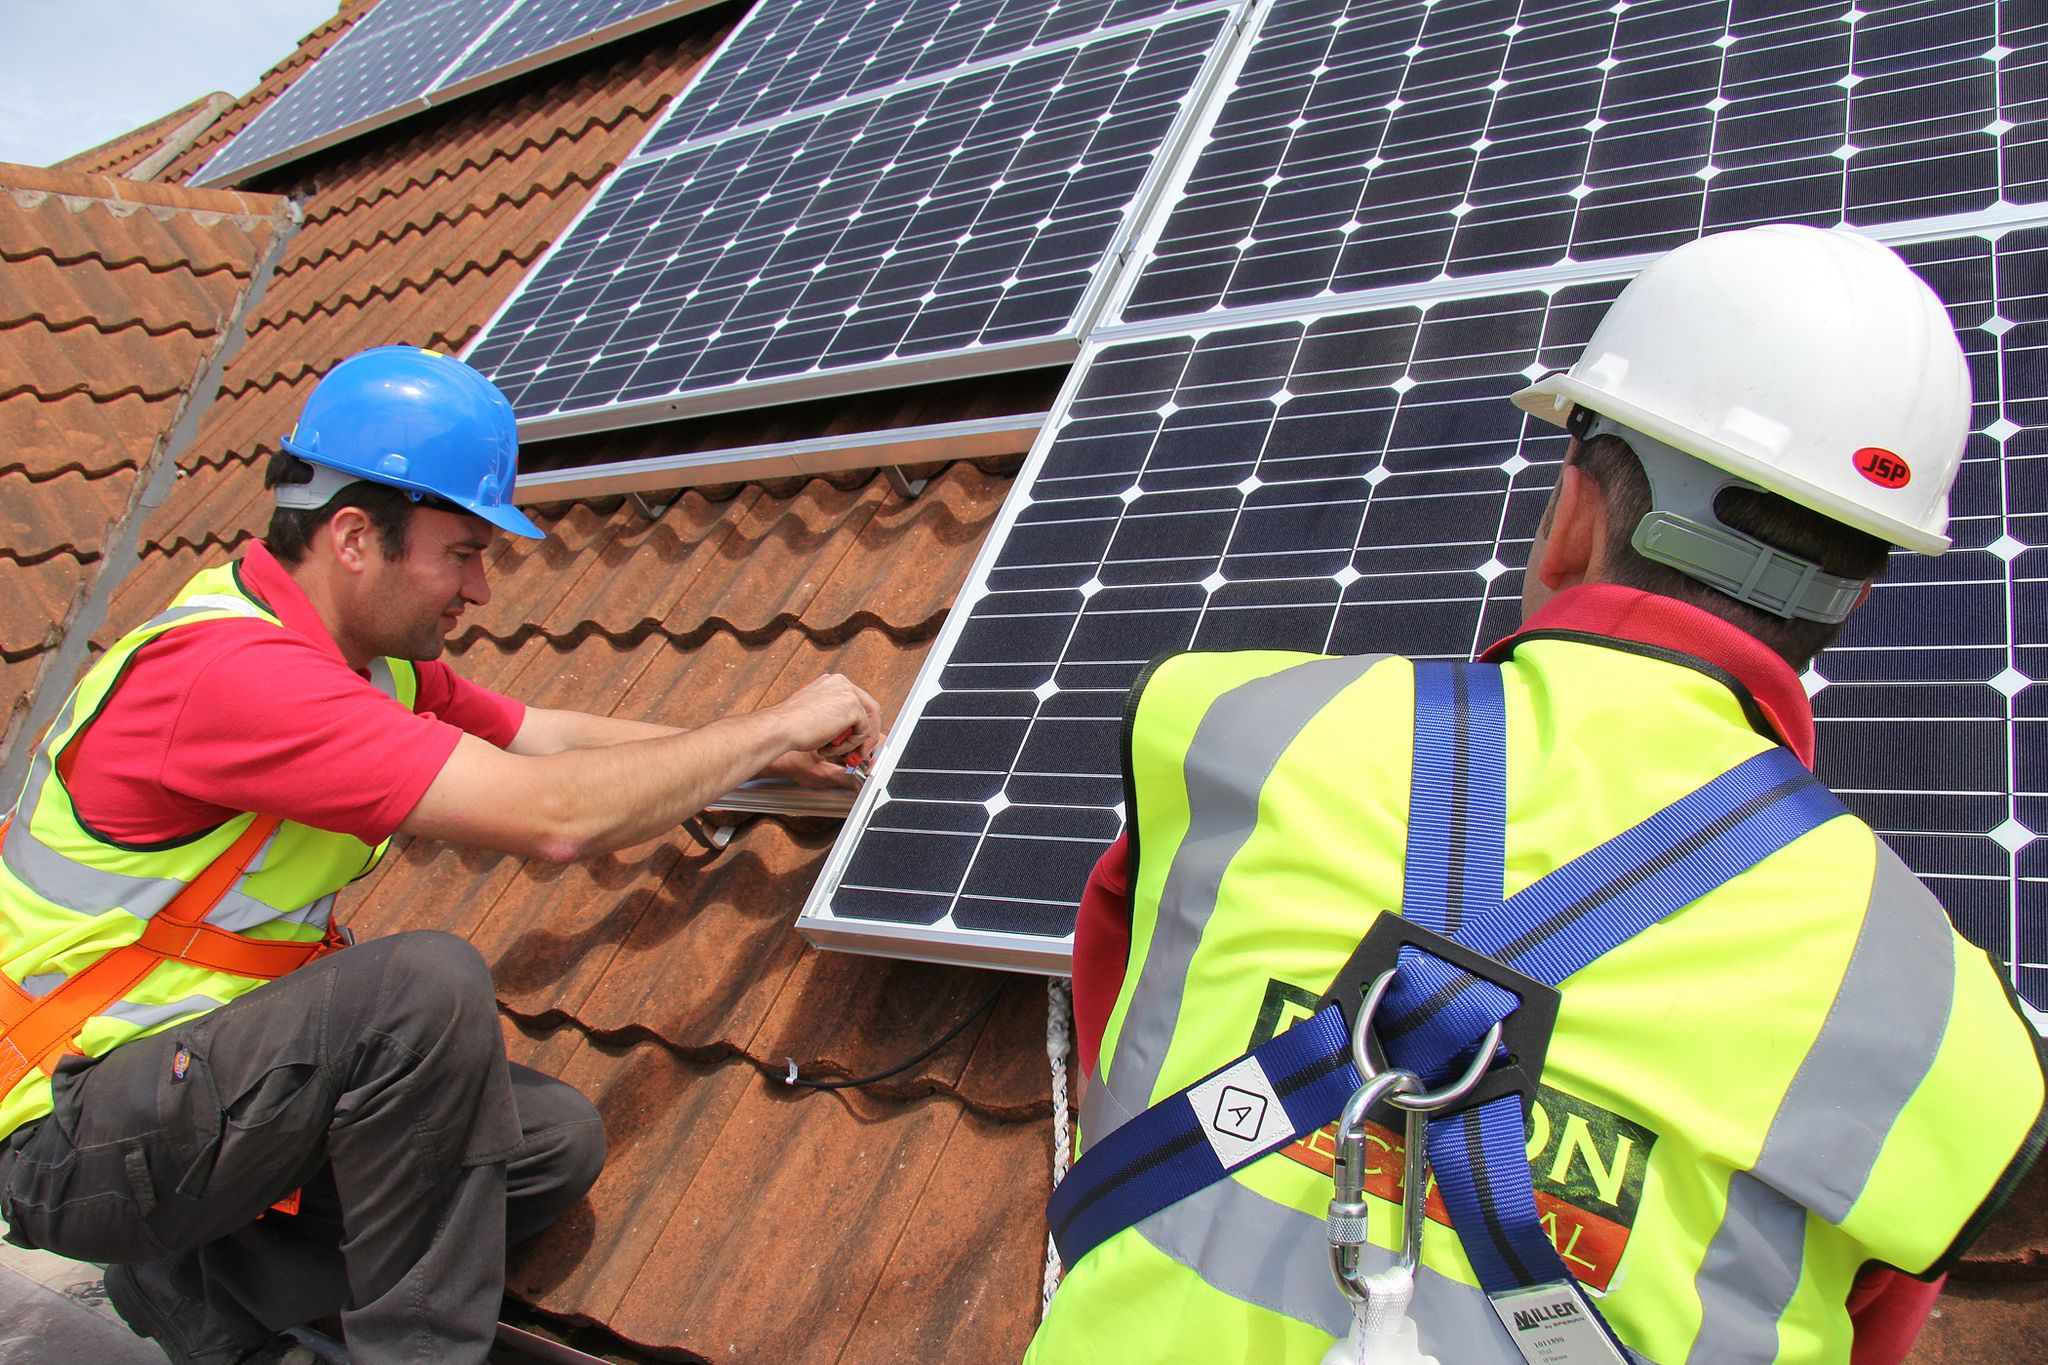 Could you be the lucky winner of the Roxon solar PV system? Less than 24 hours to find out!